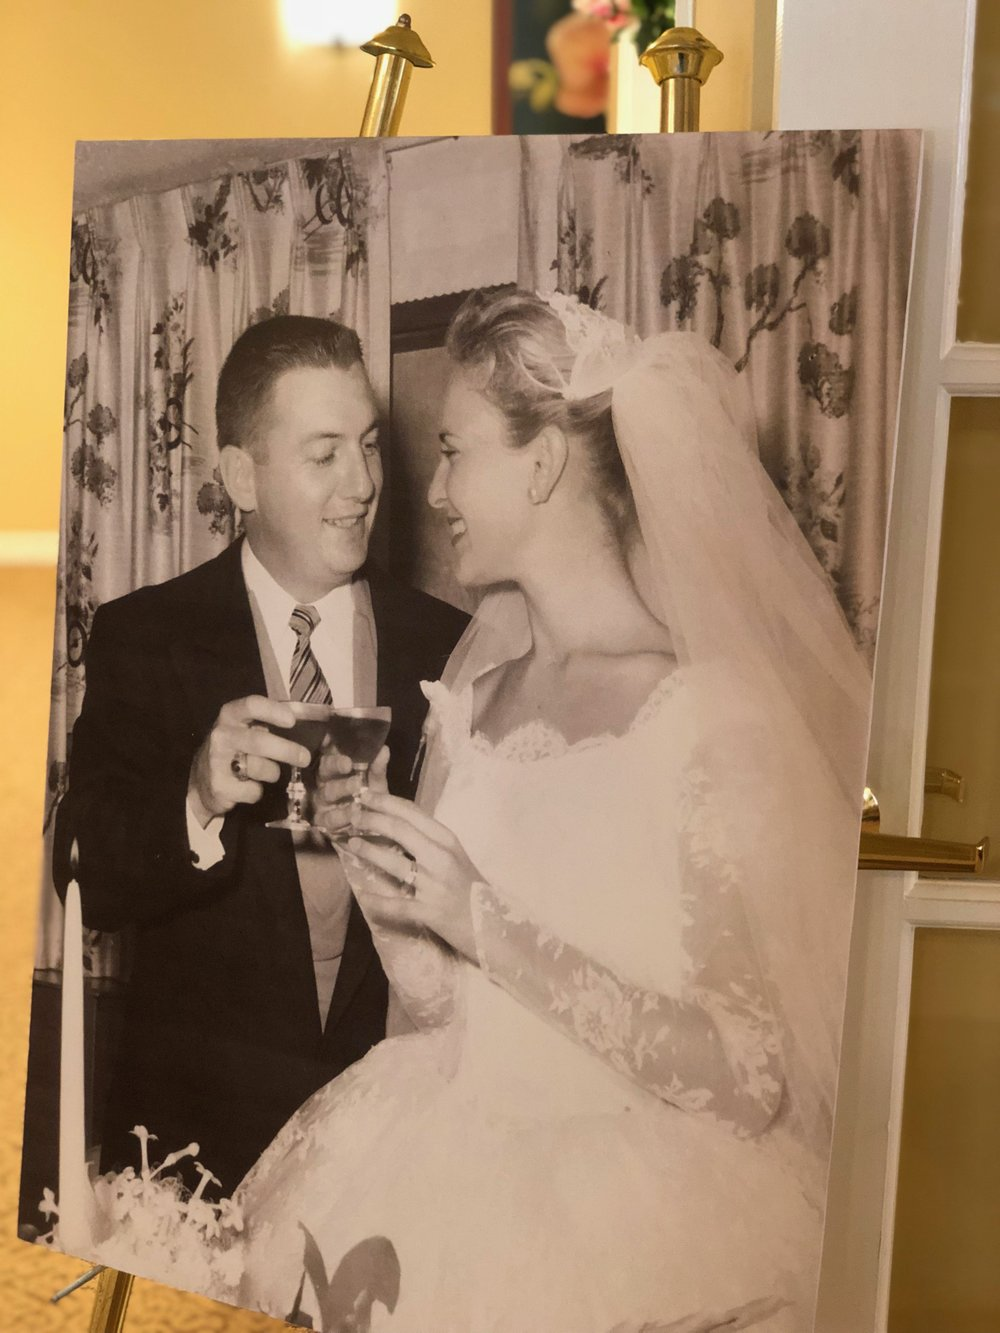 On display was a large photo of the bride and groom on Sept. 6, 1958.